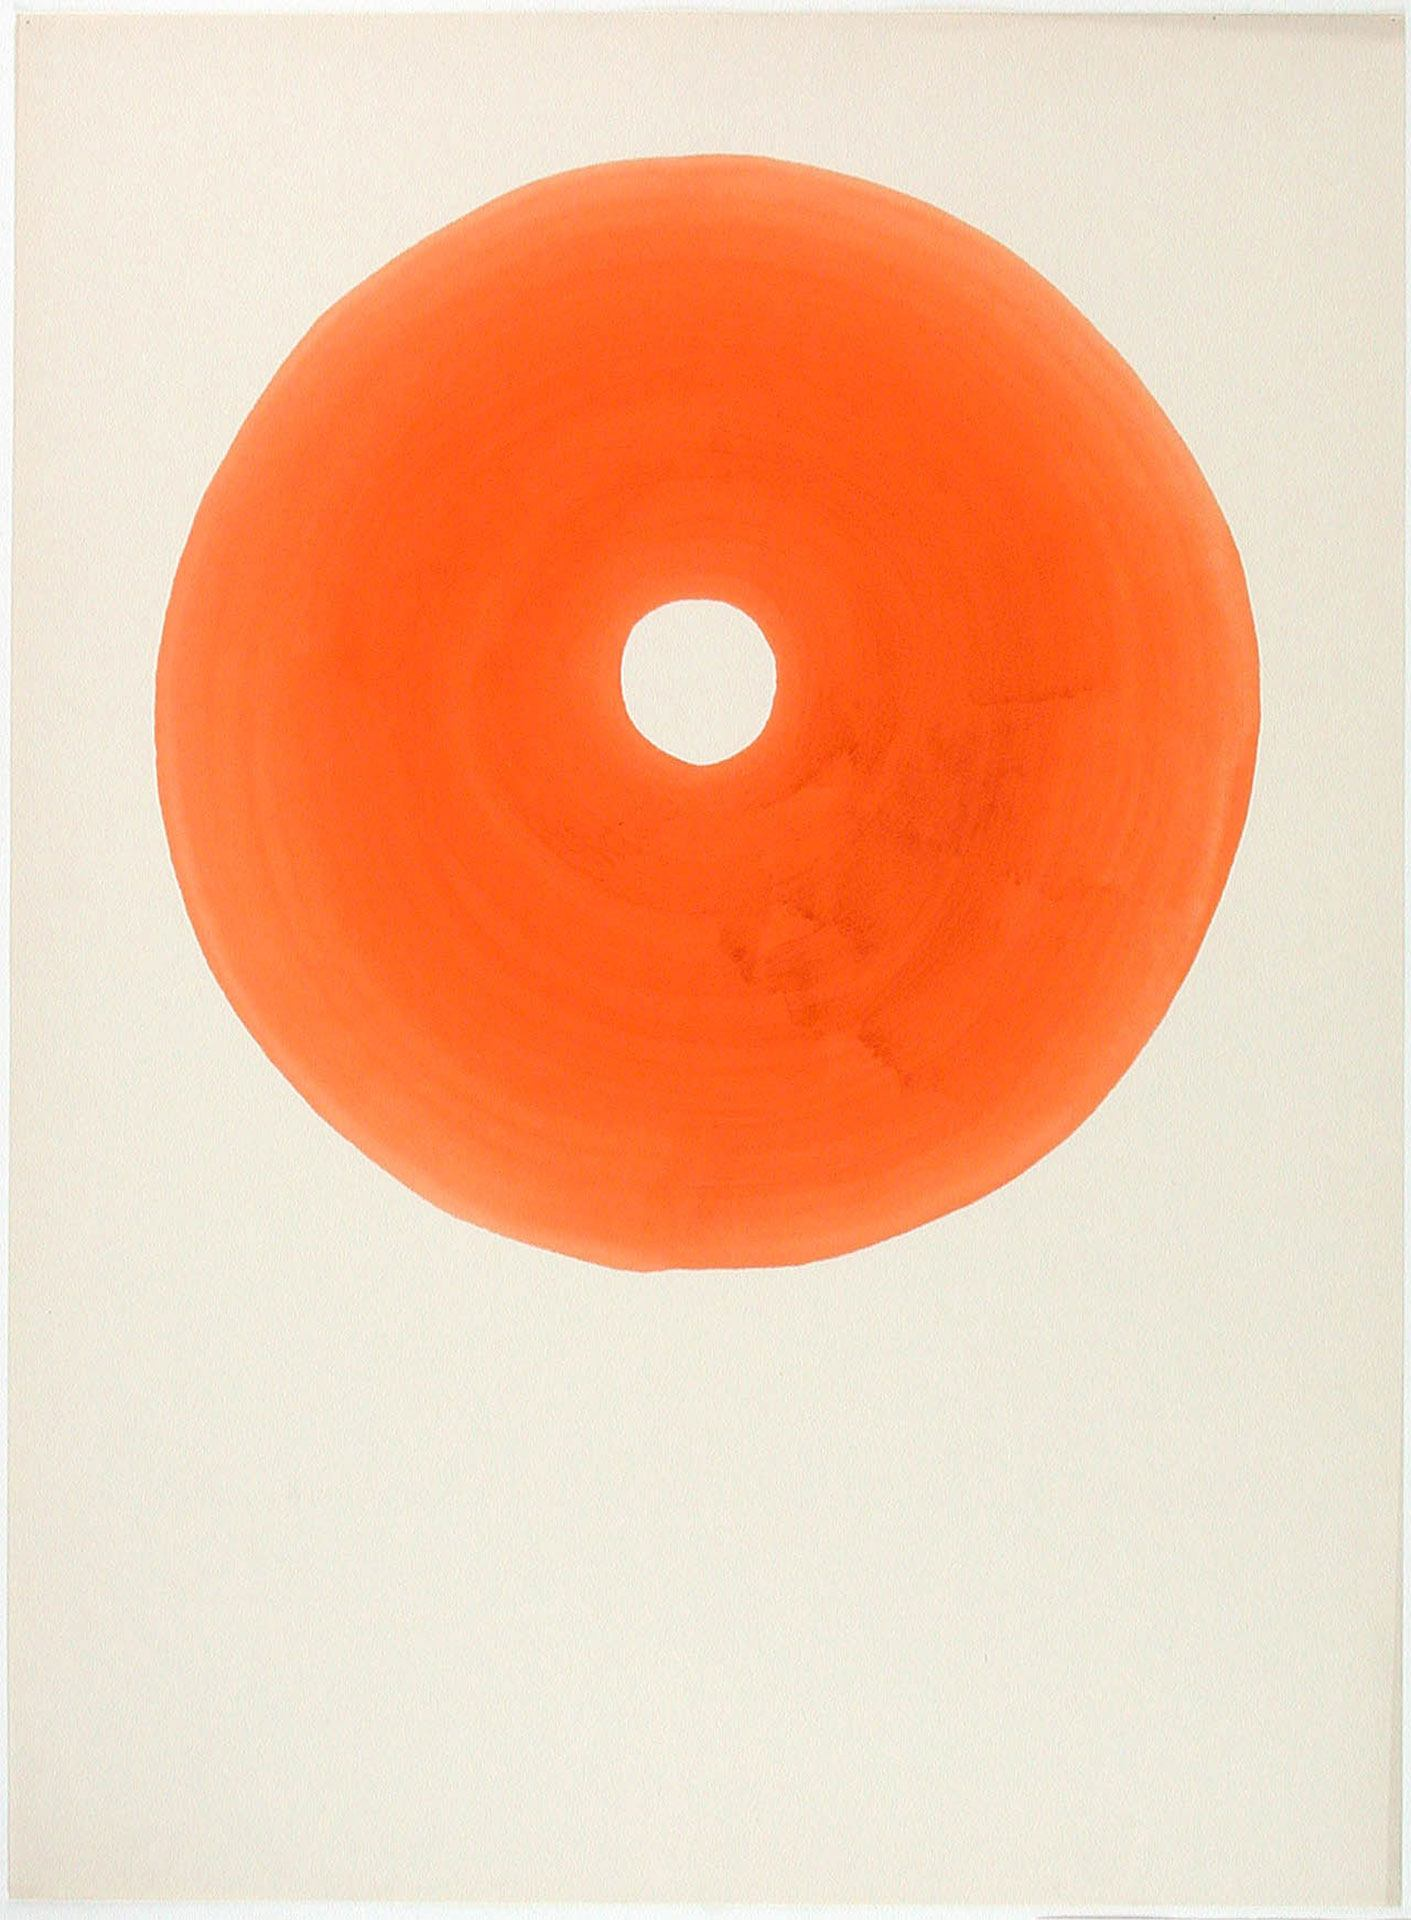 Louis Archambault, Untitled [Orange Circle], 1971.⁣ MMFA, gift of the artist in memory of his wife, Mariette.